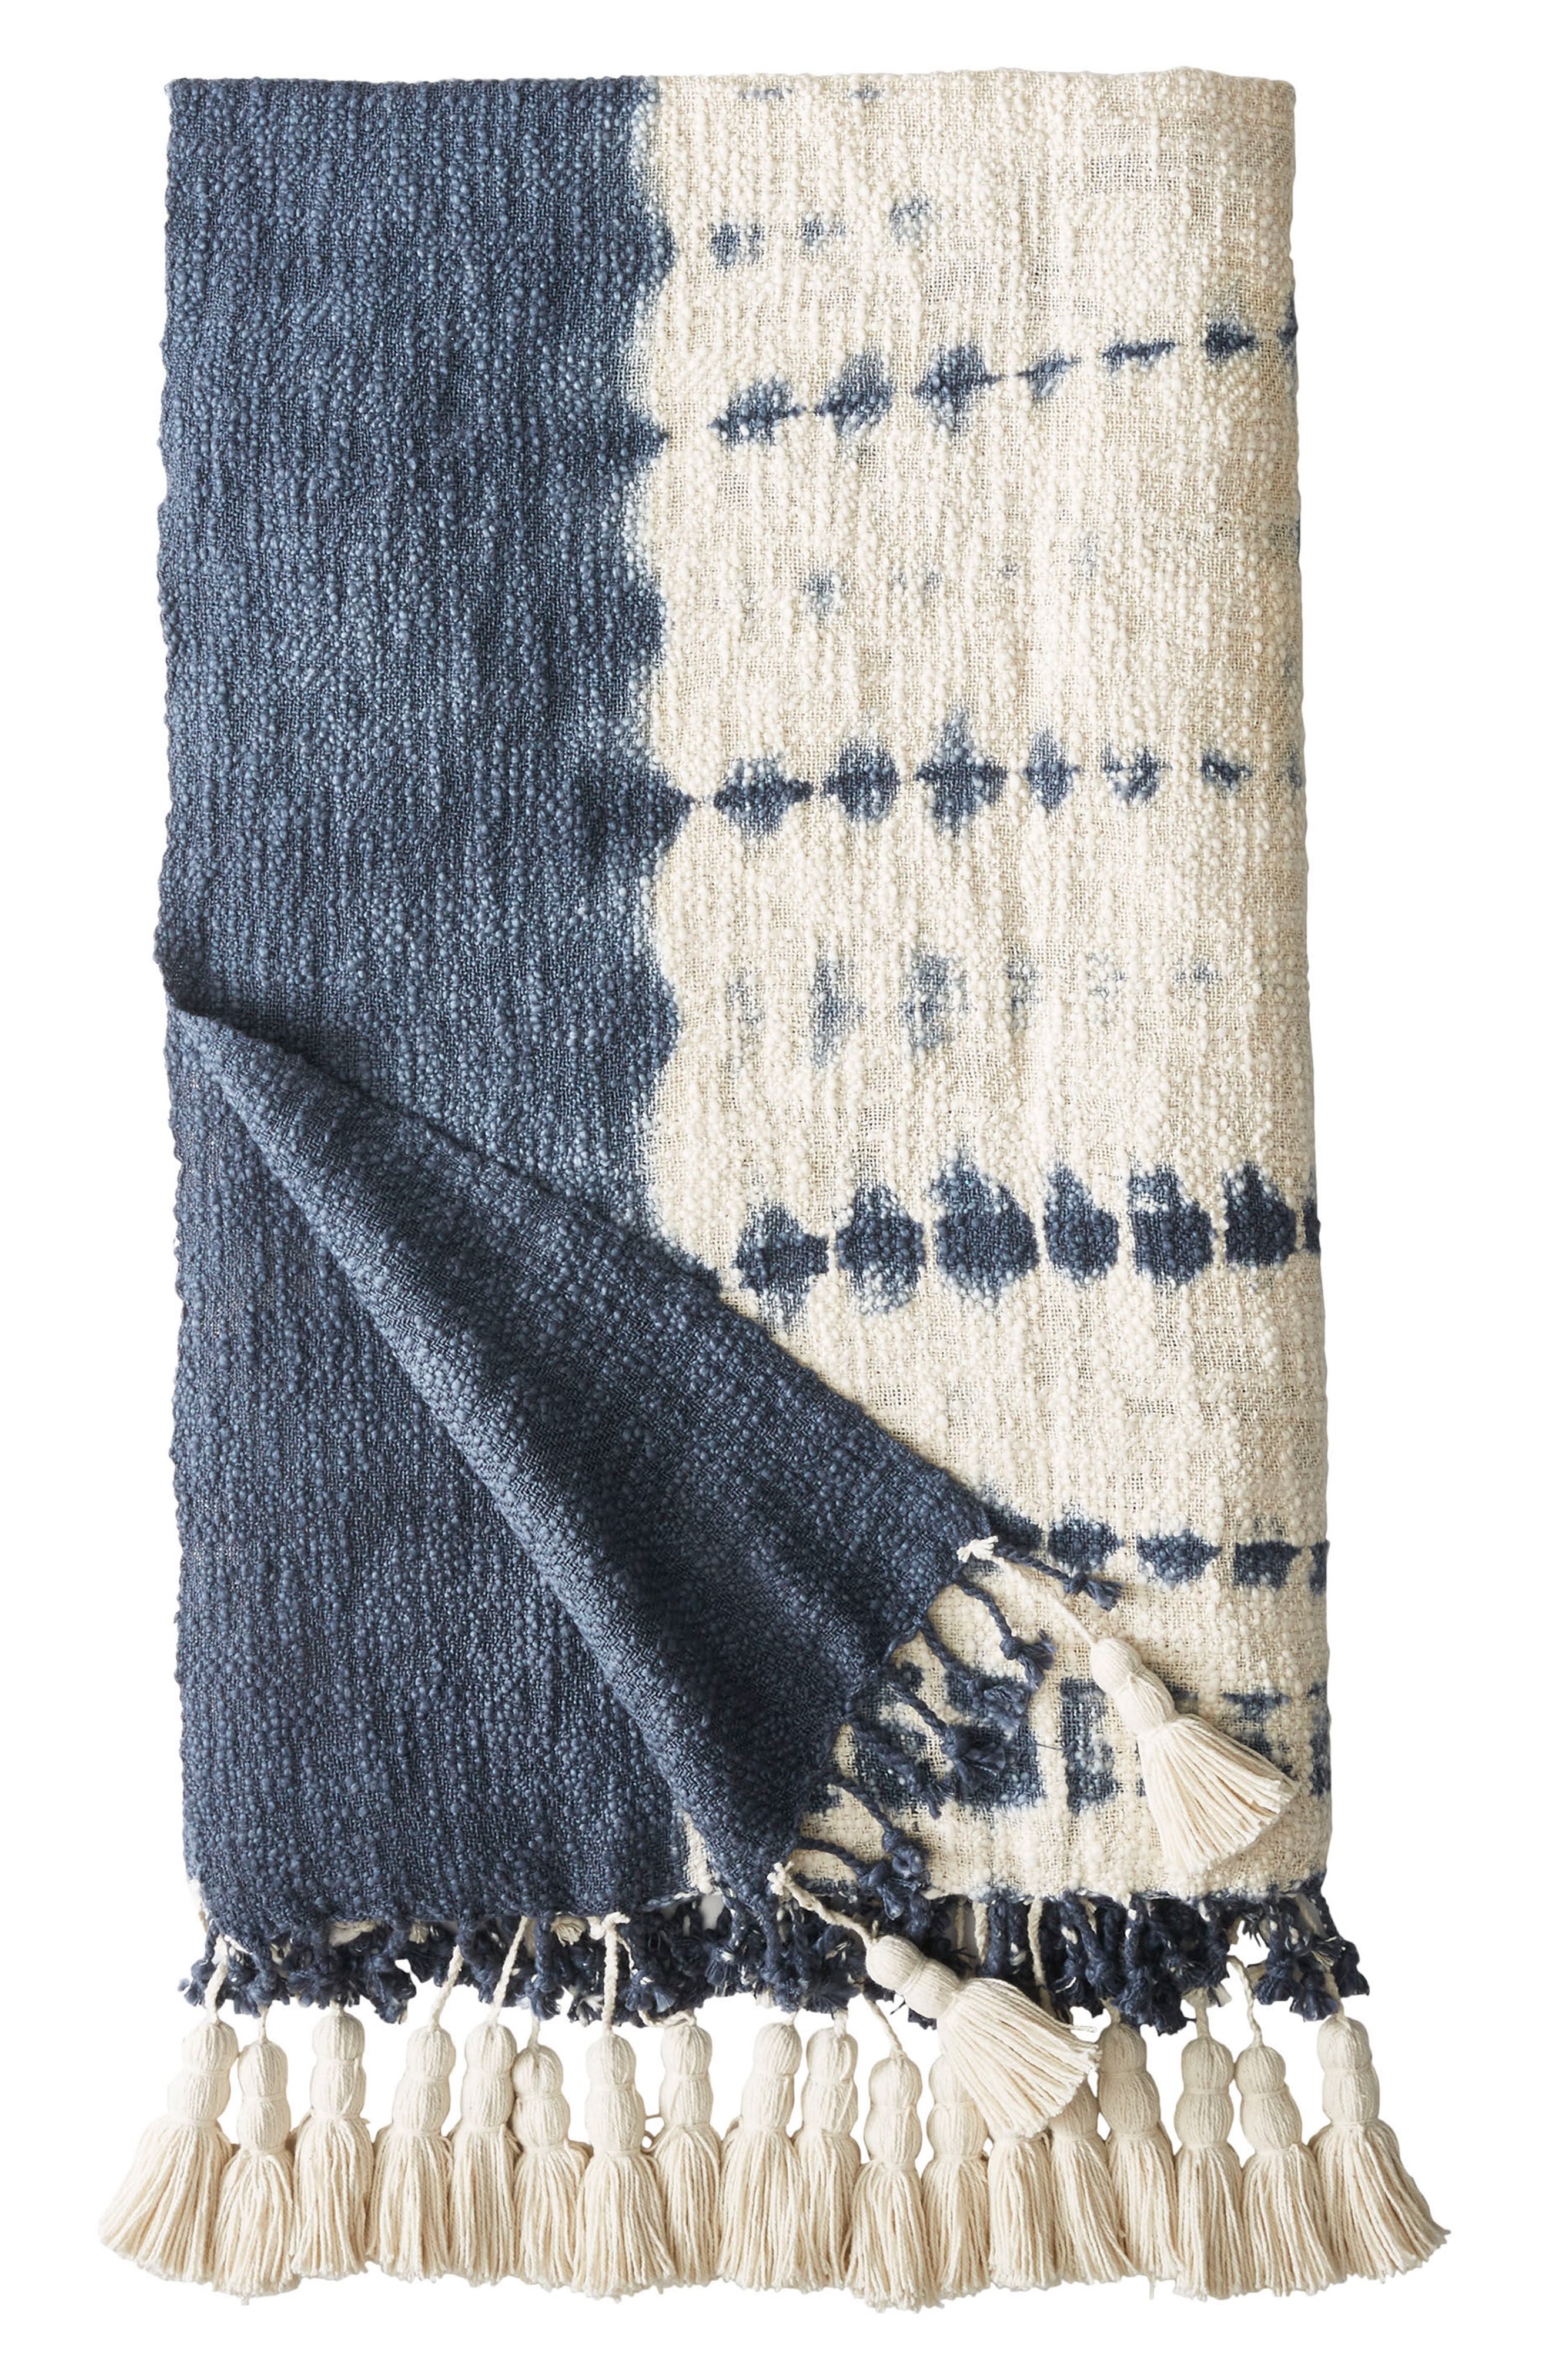 Island Indigo Throw Blanket,                             Main thumbnail 1, color,                             415